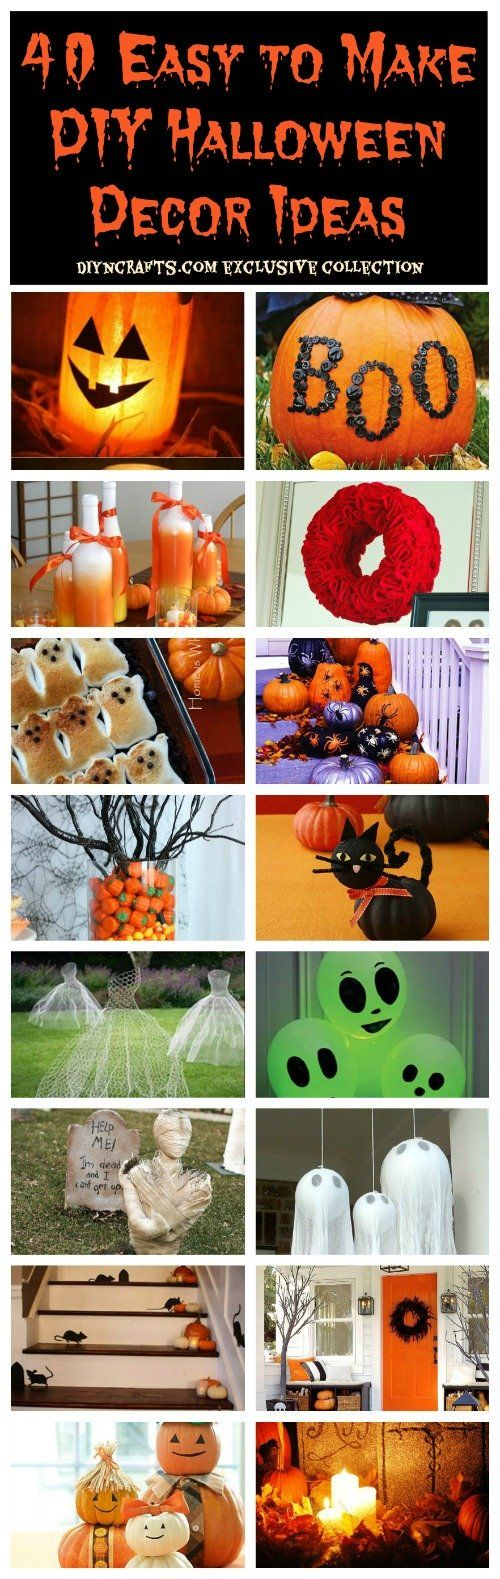 40 Easy to Make DIY Halloween Decor Ideas - Page 4 of 4 - DIY & Crafts: